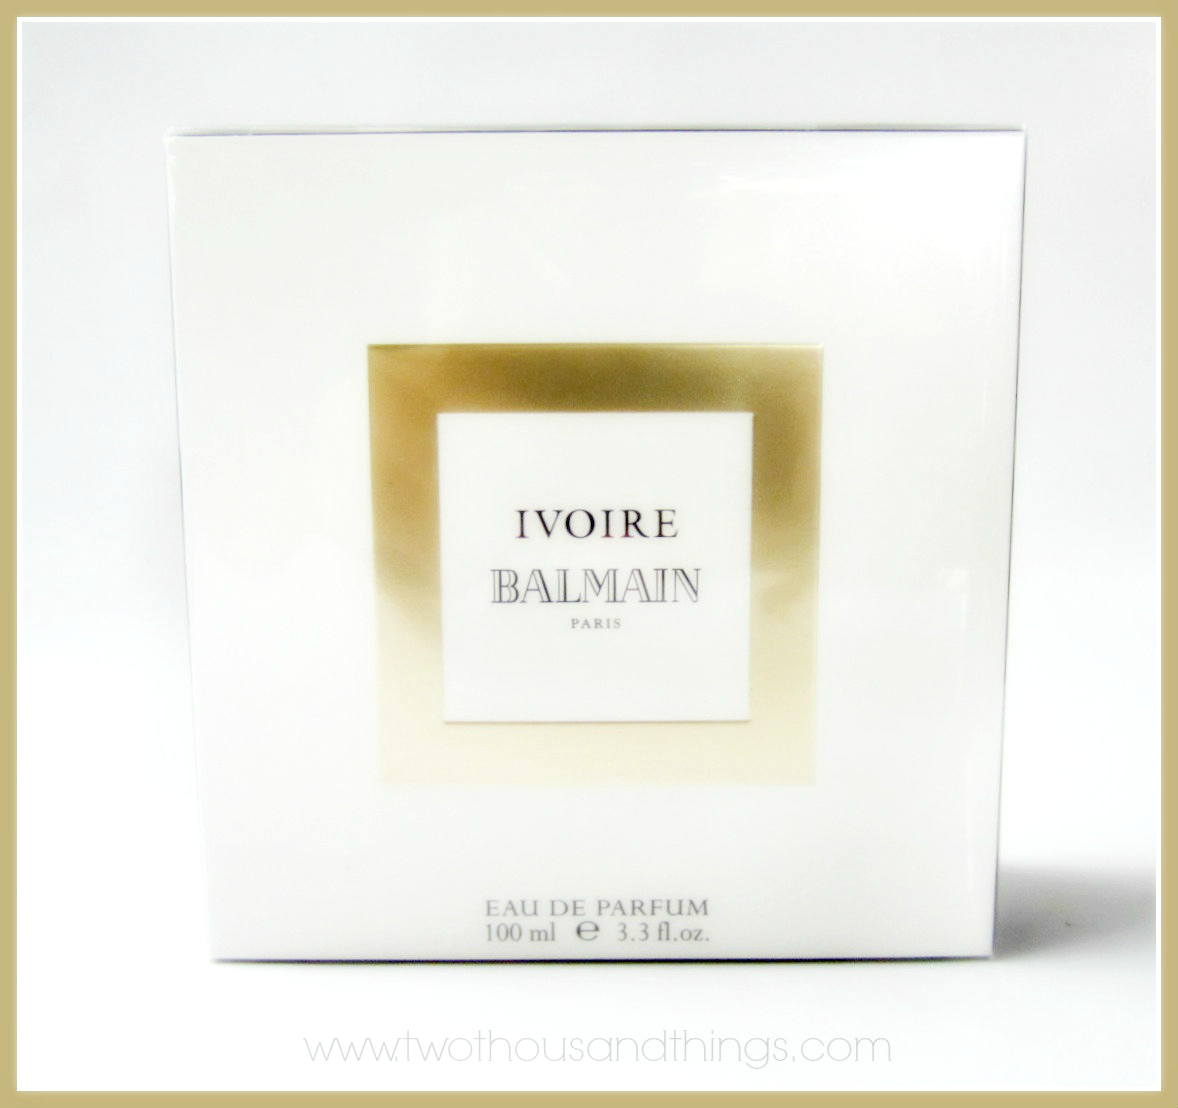 Perfume Balmain Ivoire Edp Two Thousand Things Wardah Roll On For Him If You Read My Previous Post About The Media Release Event That I Attended A While Ago Probably Remember Promised Full Review